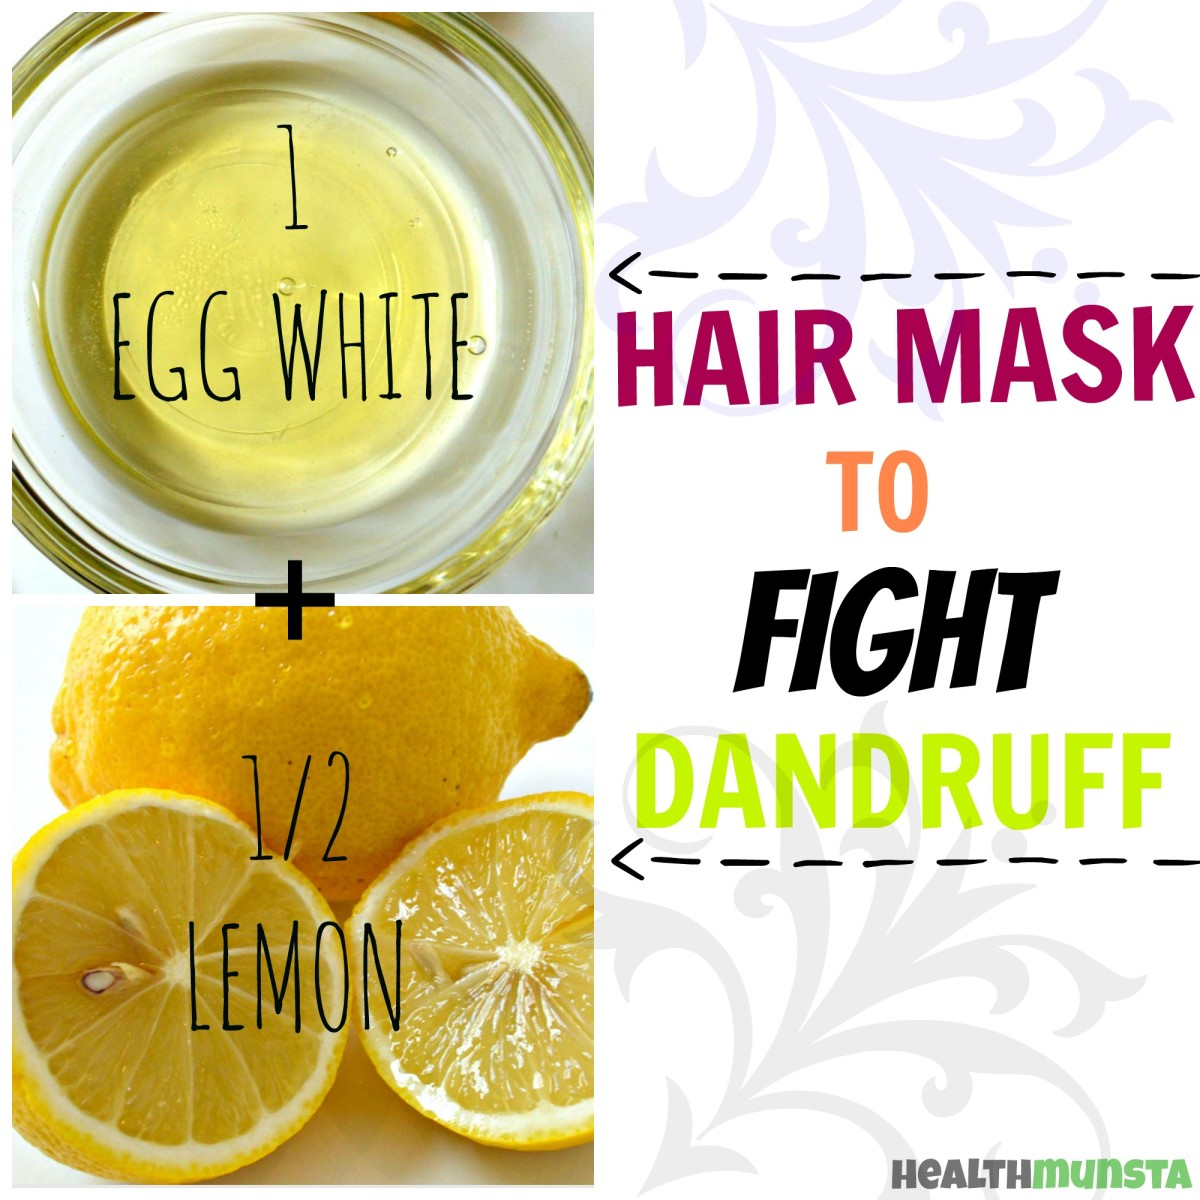 This egg white lemon  hair mask is super effective against dandruff!